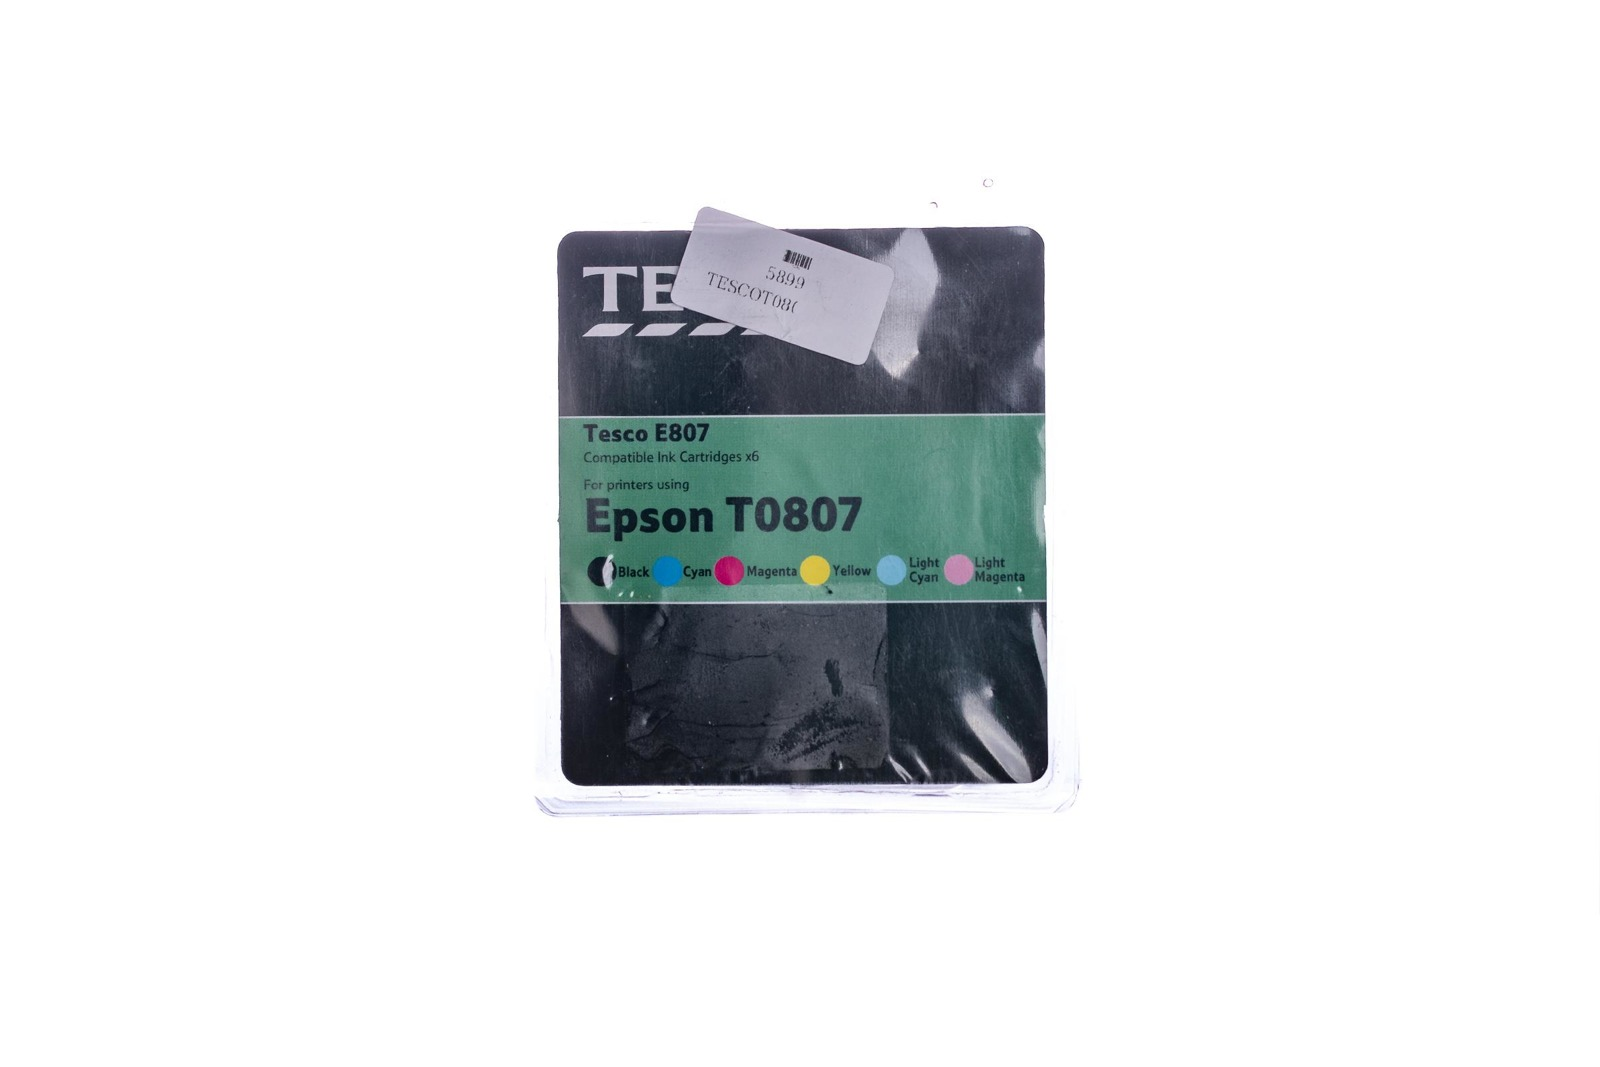 Remanufactured Ink cartridge Tesco Epson T0807